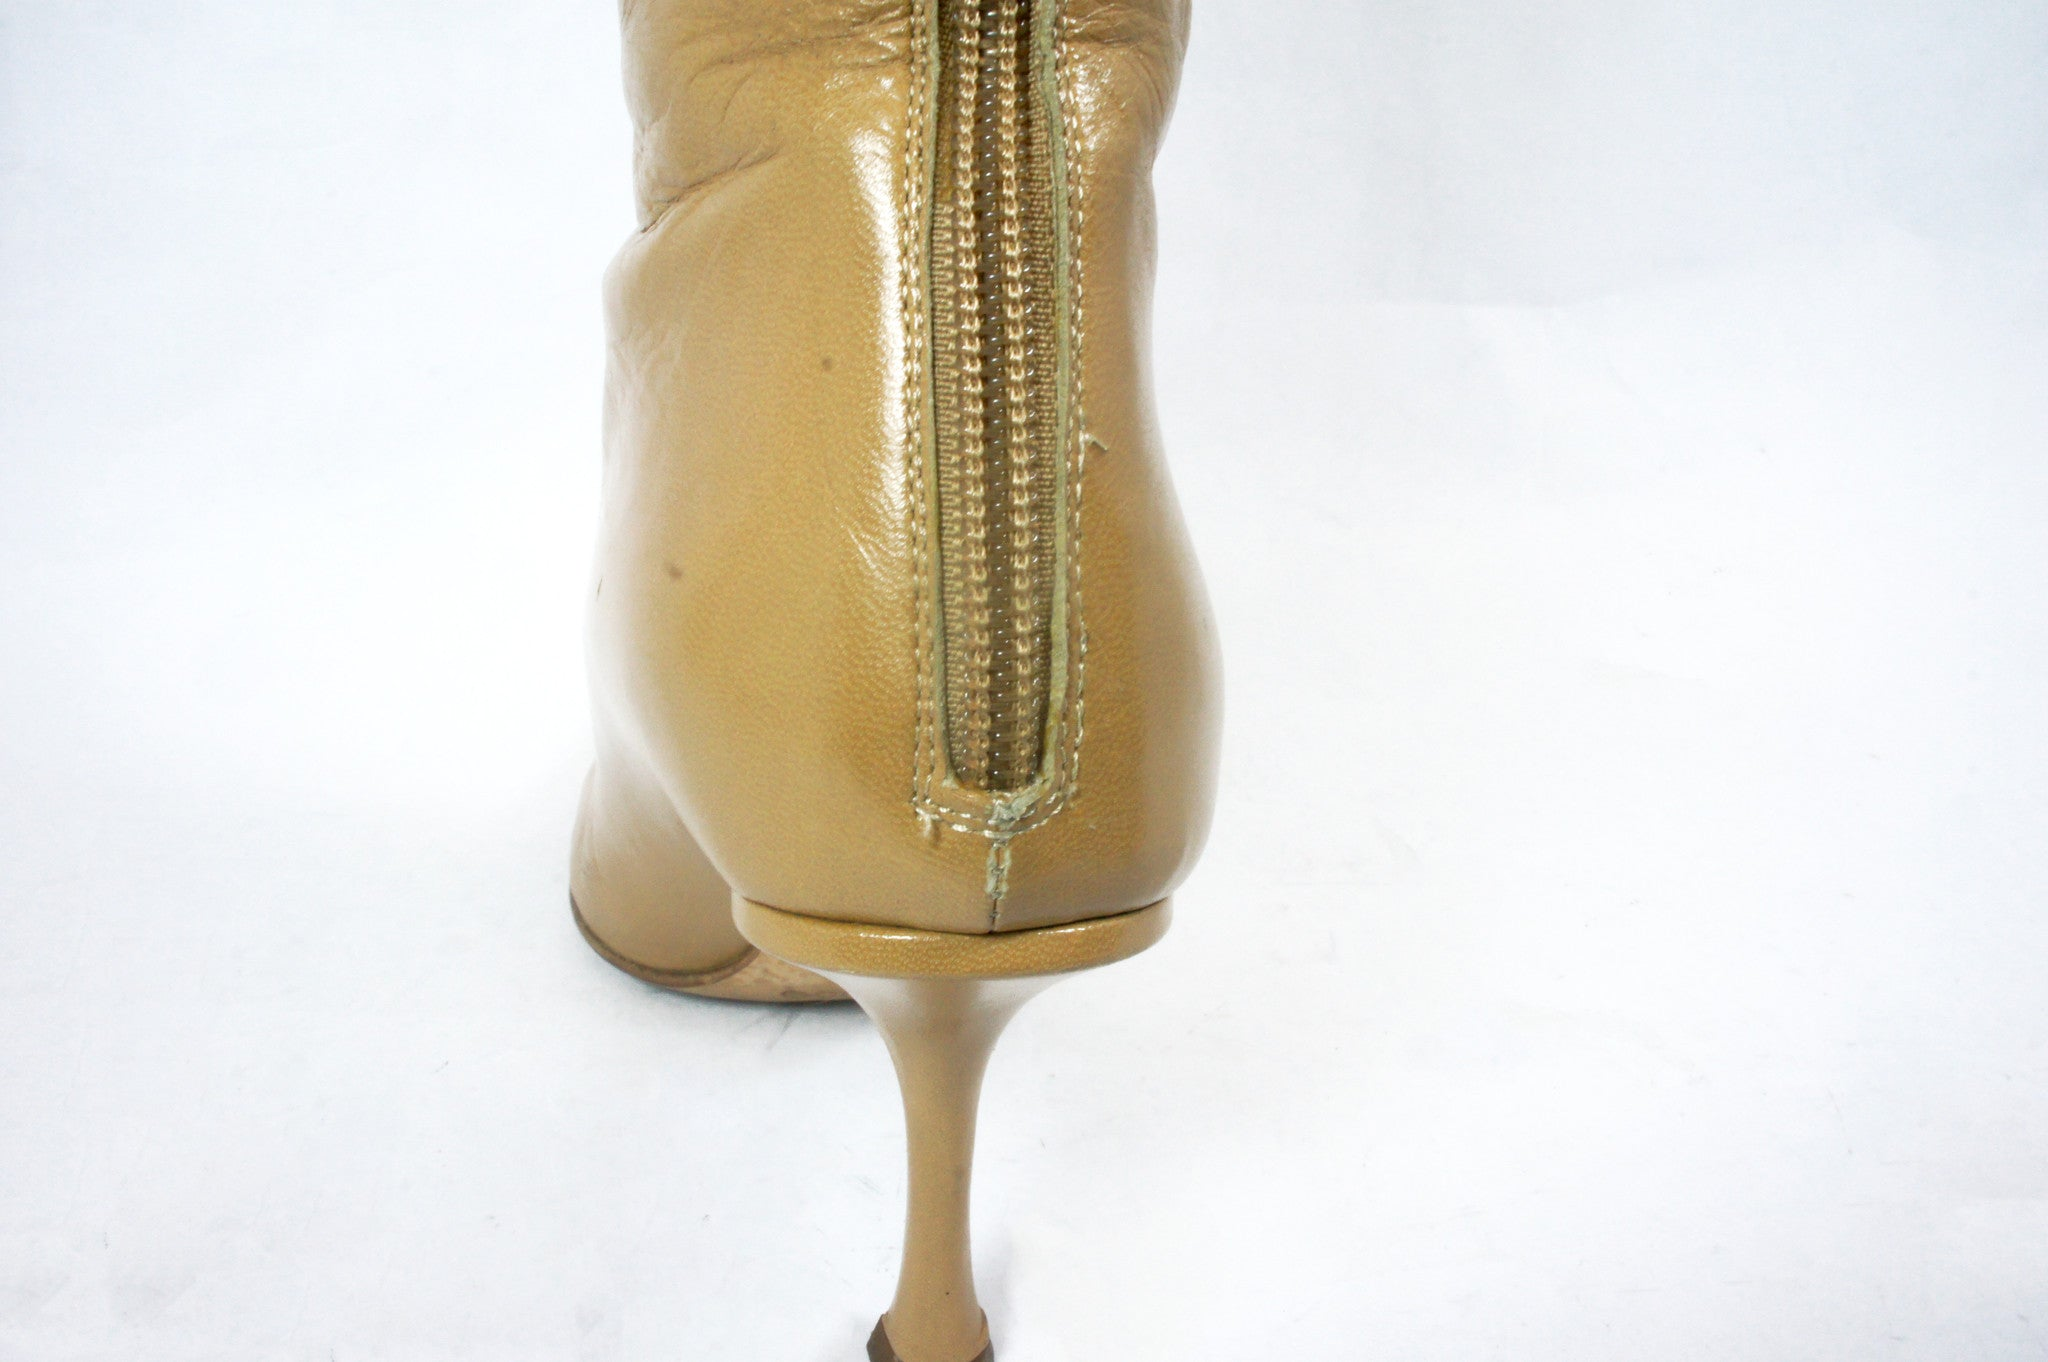 Jimmy Choo Beige Knee High Boots (Size 36.5) - Encore Consignment - 12